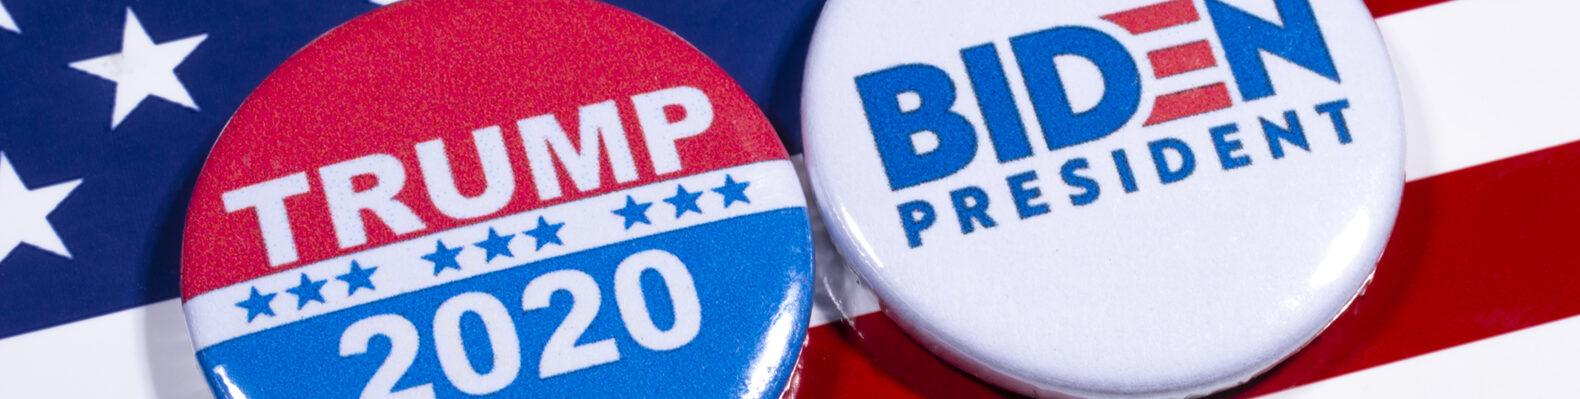 Biden for President button and Trump 2020 button on American flag background